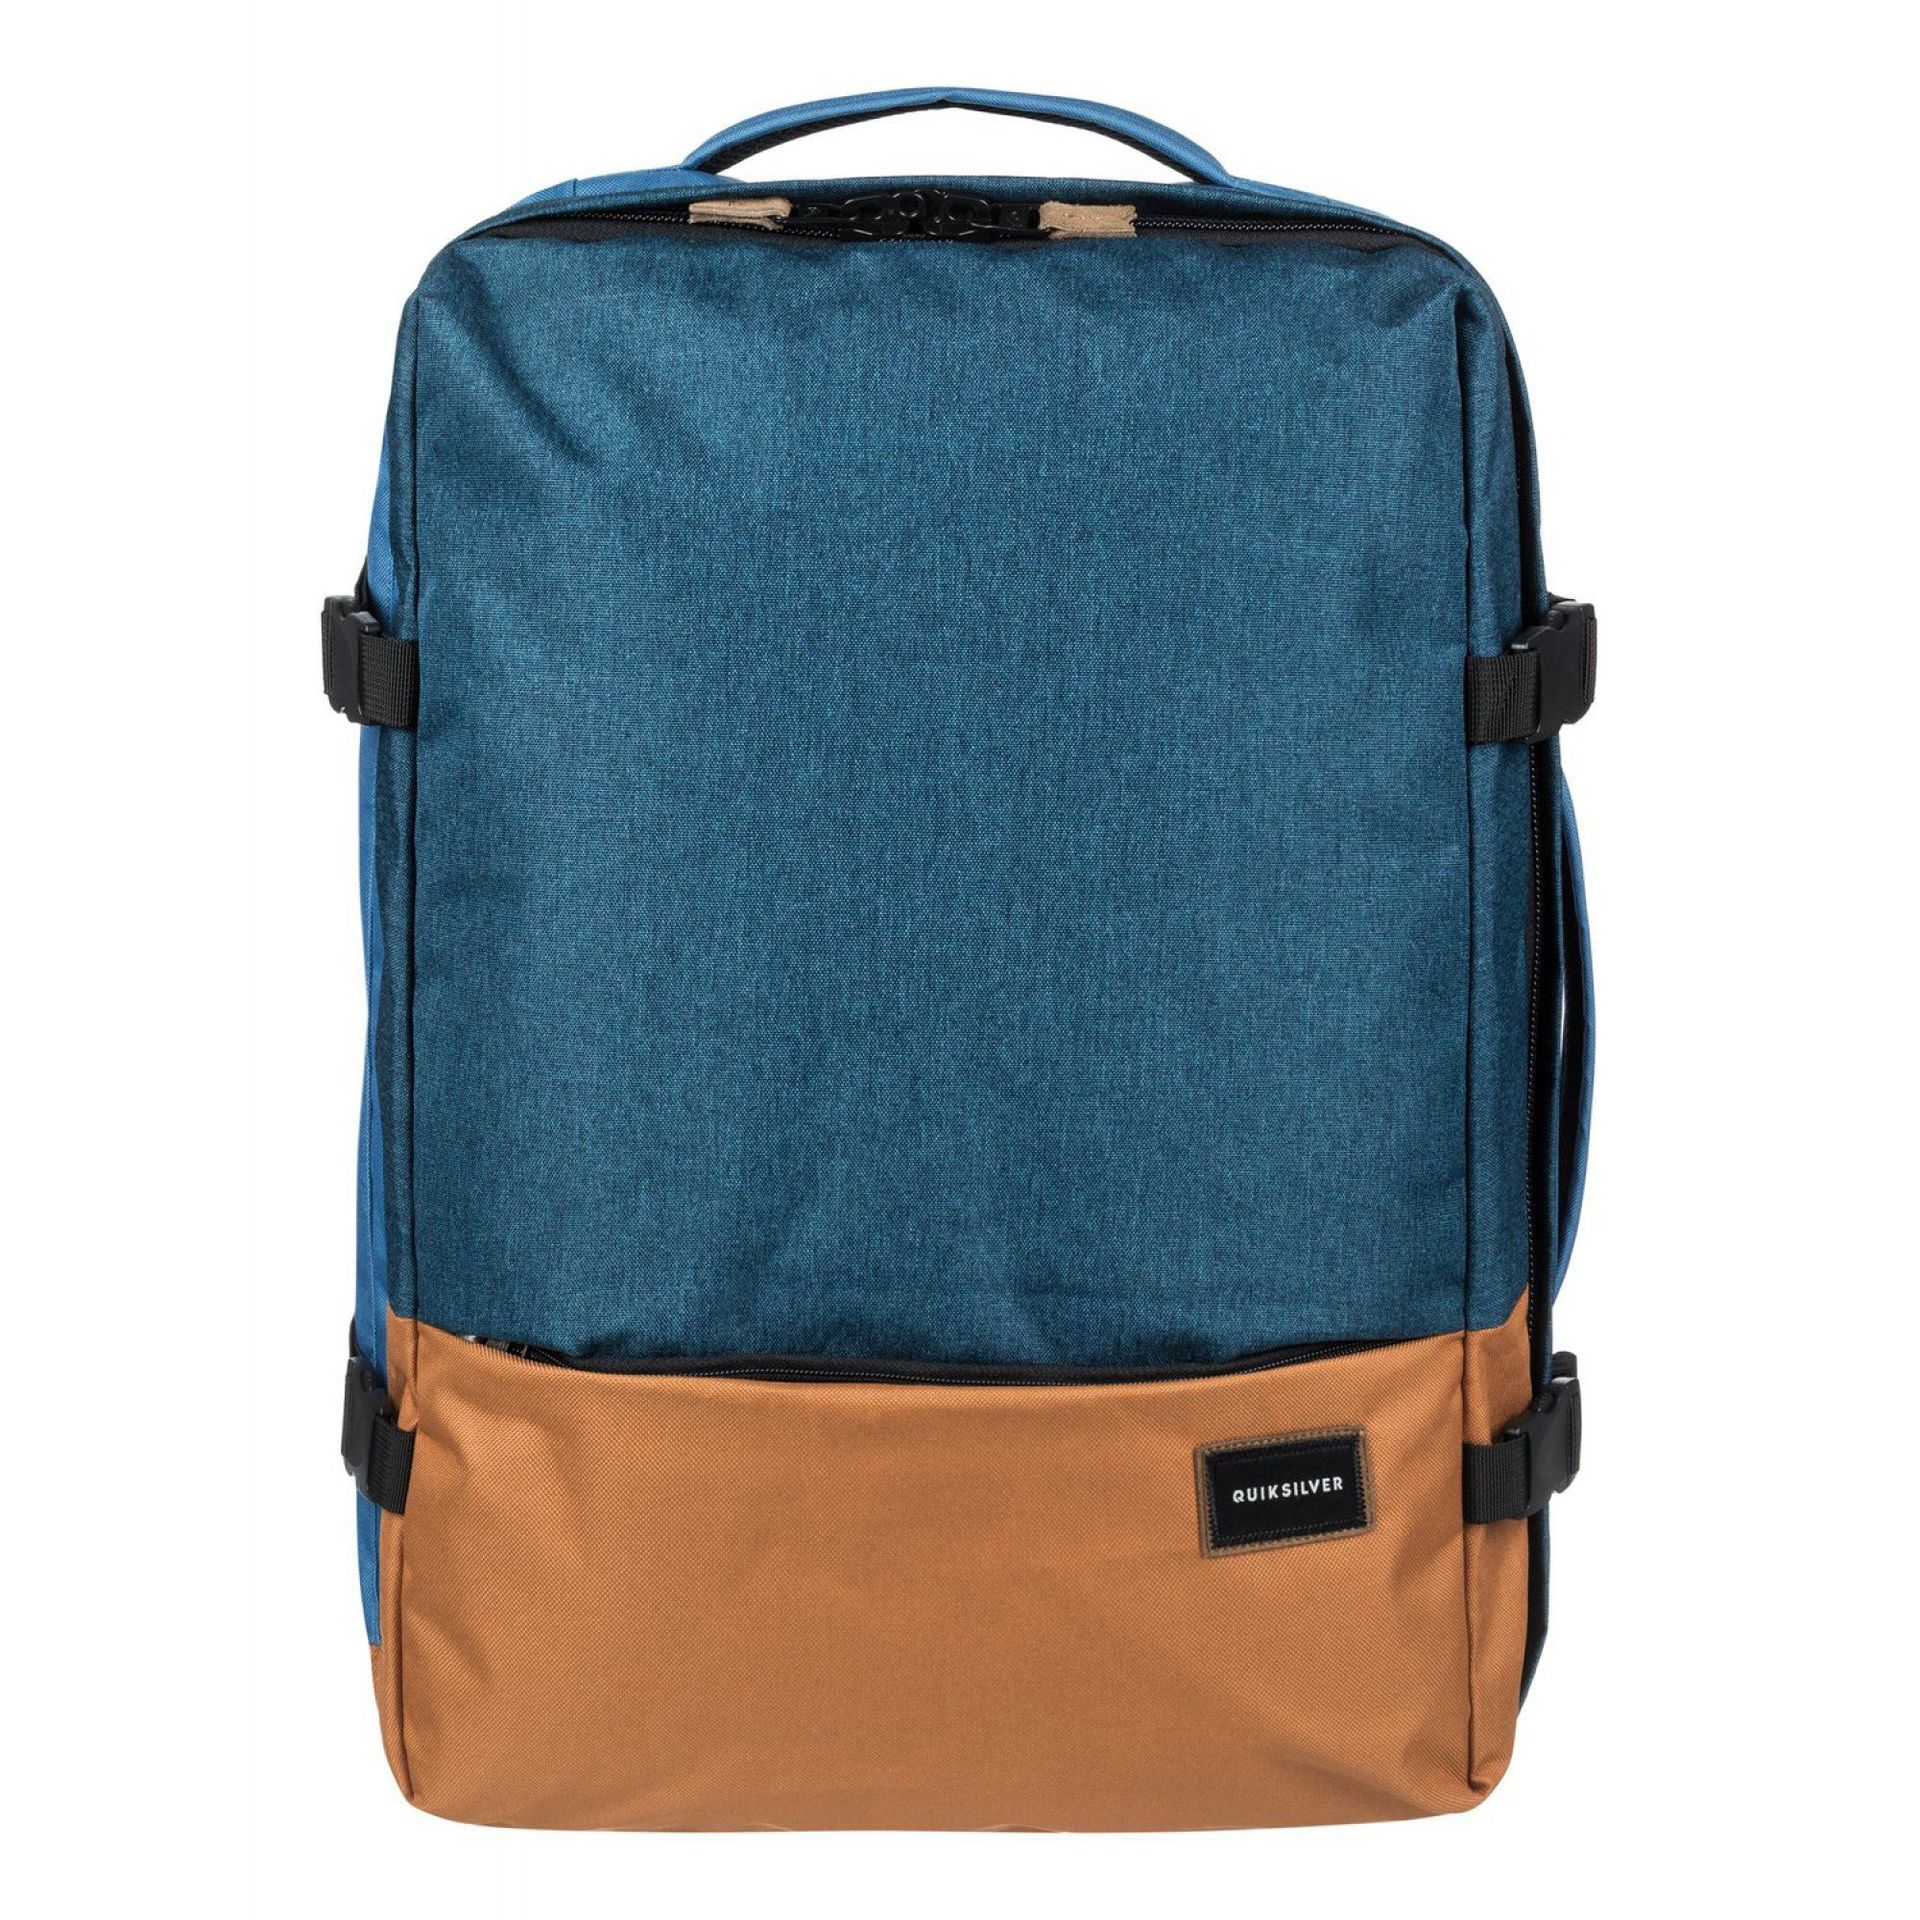 PLECAK QUIKSILVER VERSATYL BLUE NIGHTS HEATHER